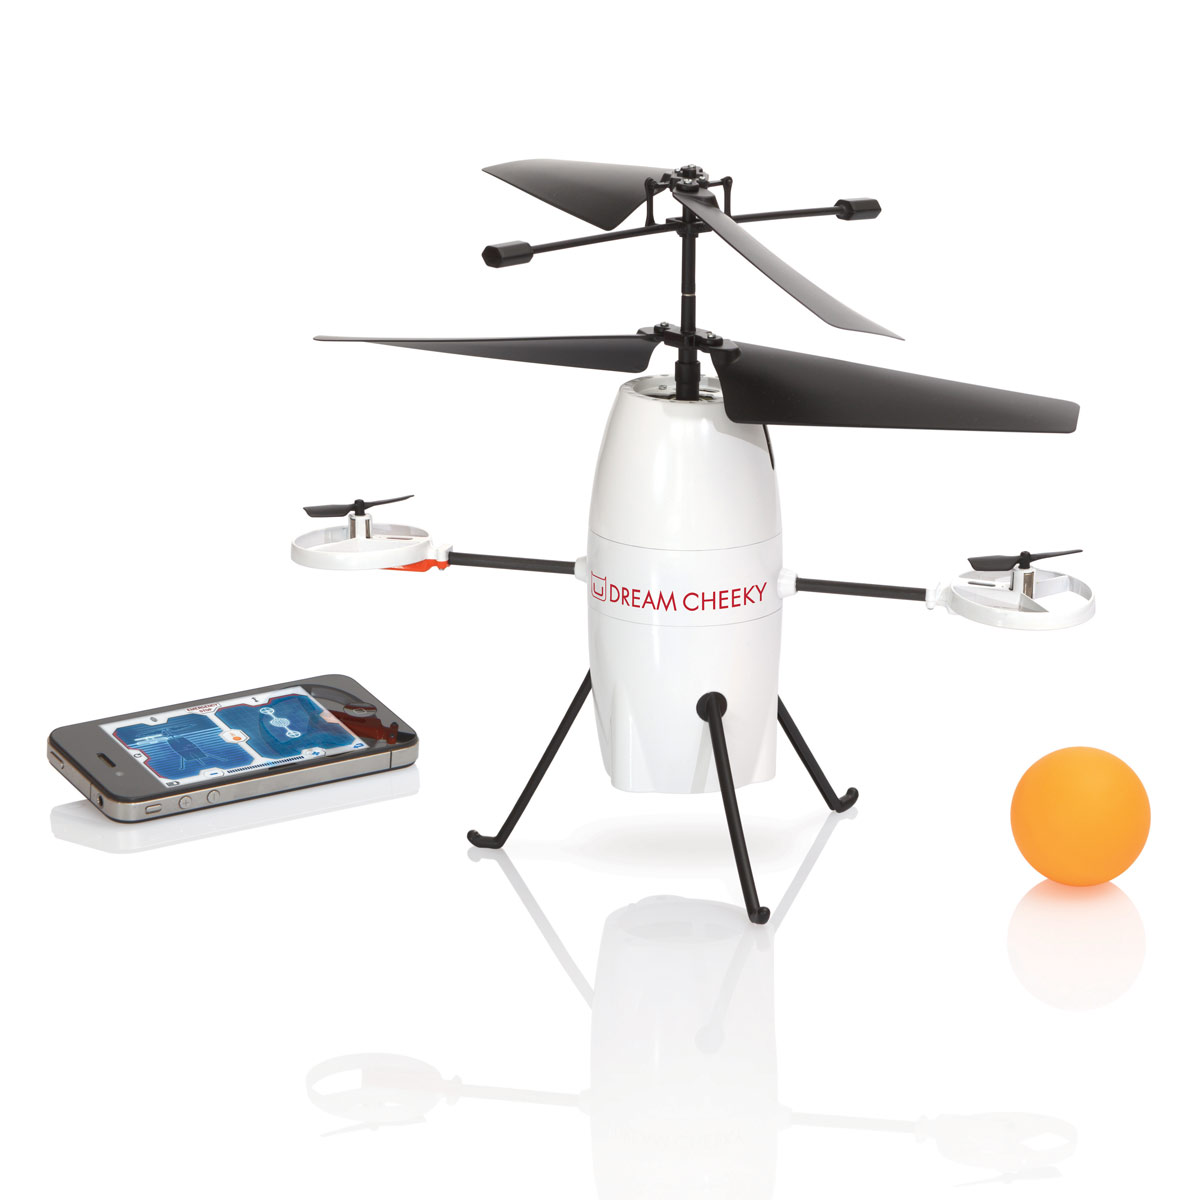 istrike shuttle hubschrauber bluetooth helikopter drone f r ios iphone ipad ipod. Black Bedroom Furniture Sets. Home Design Ideas